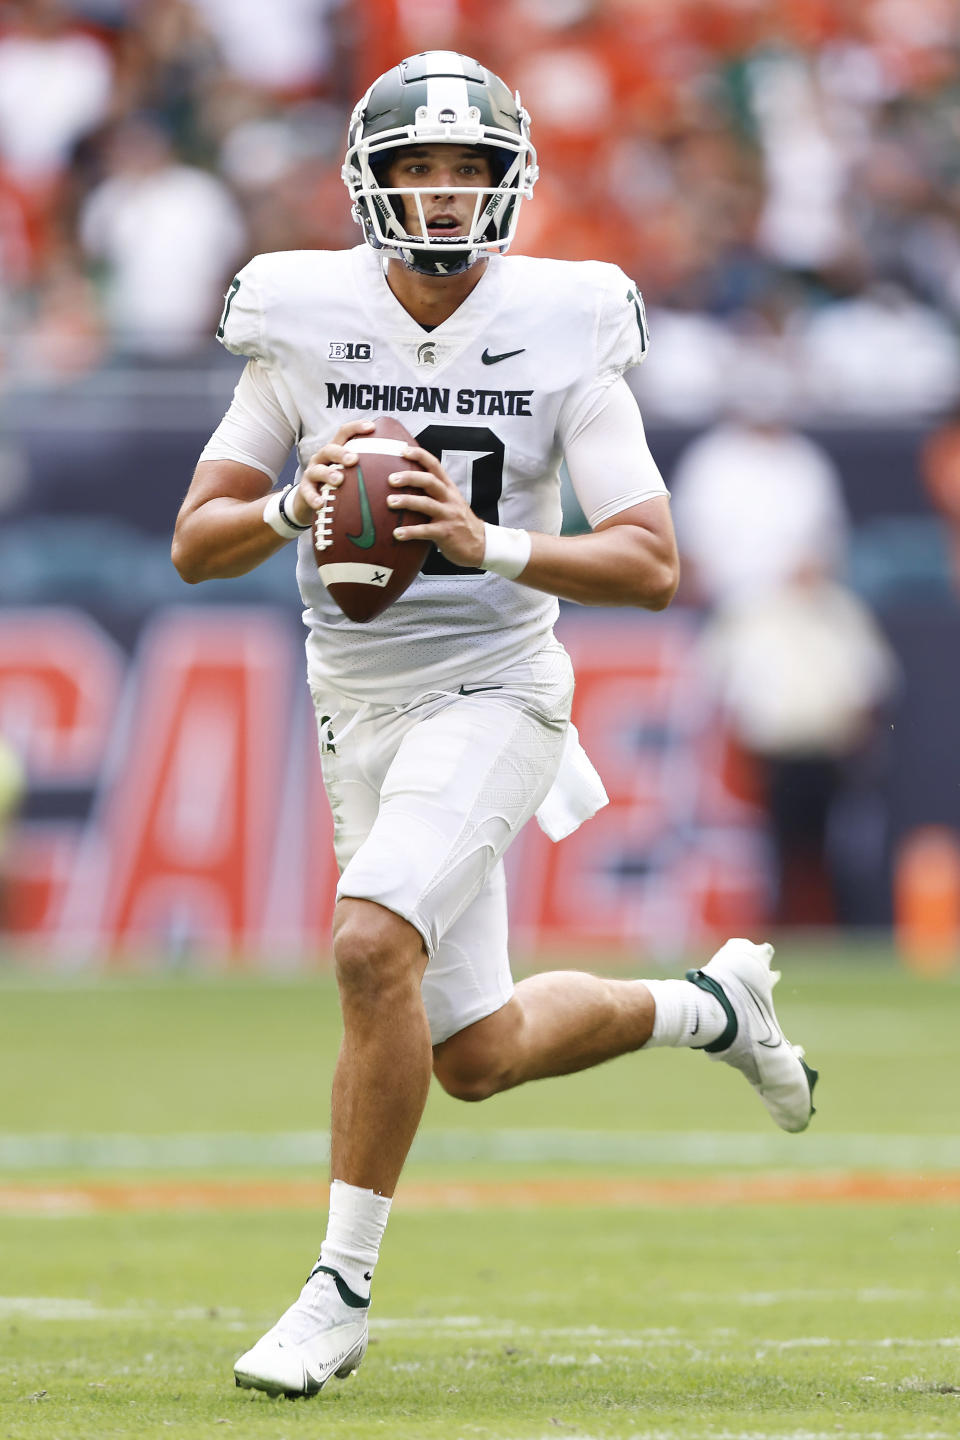 Michigan State quarterback Payton Thorne (10) looks to pass during the first quarter of an NCAA college football game against the Miami, Saturday, Sept. 18, 2021, in Miami Gardens, Fla. (AP Photo/Michael Reaves)